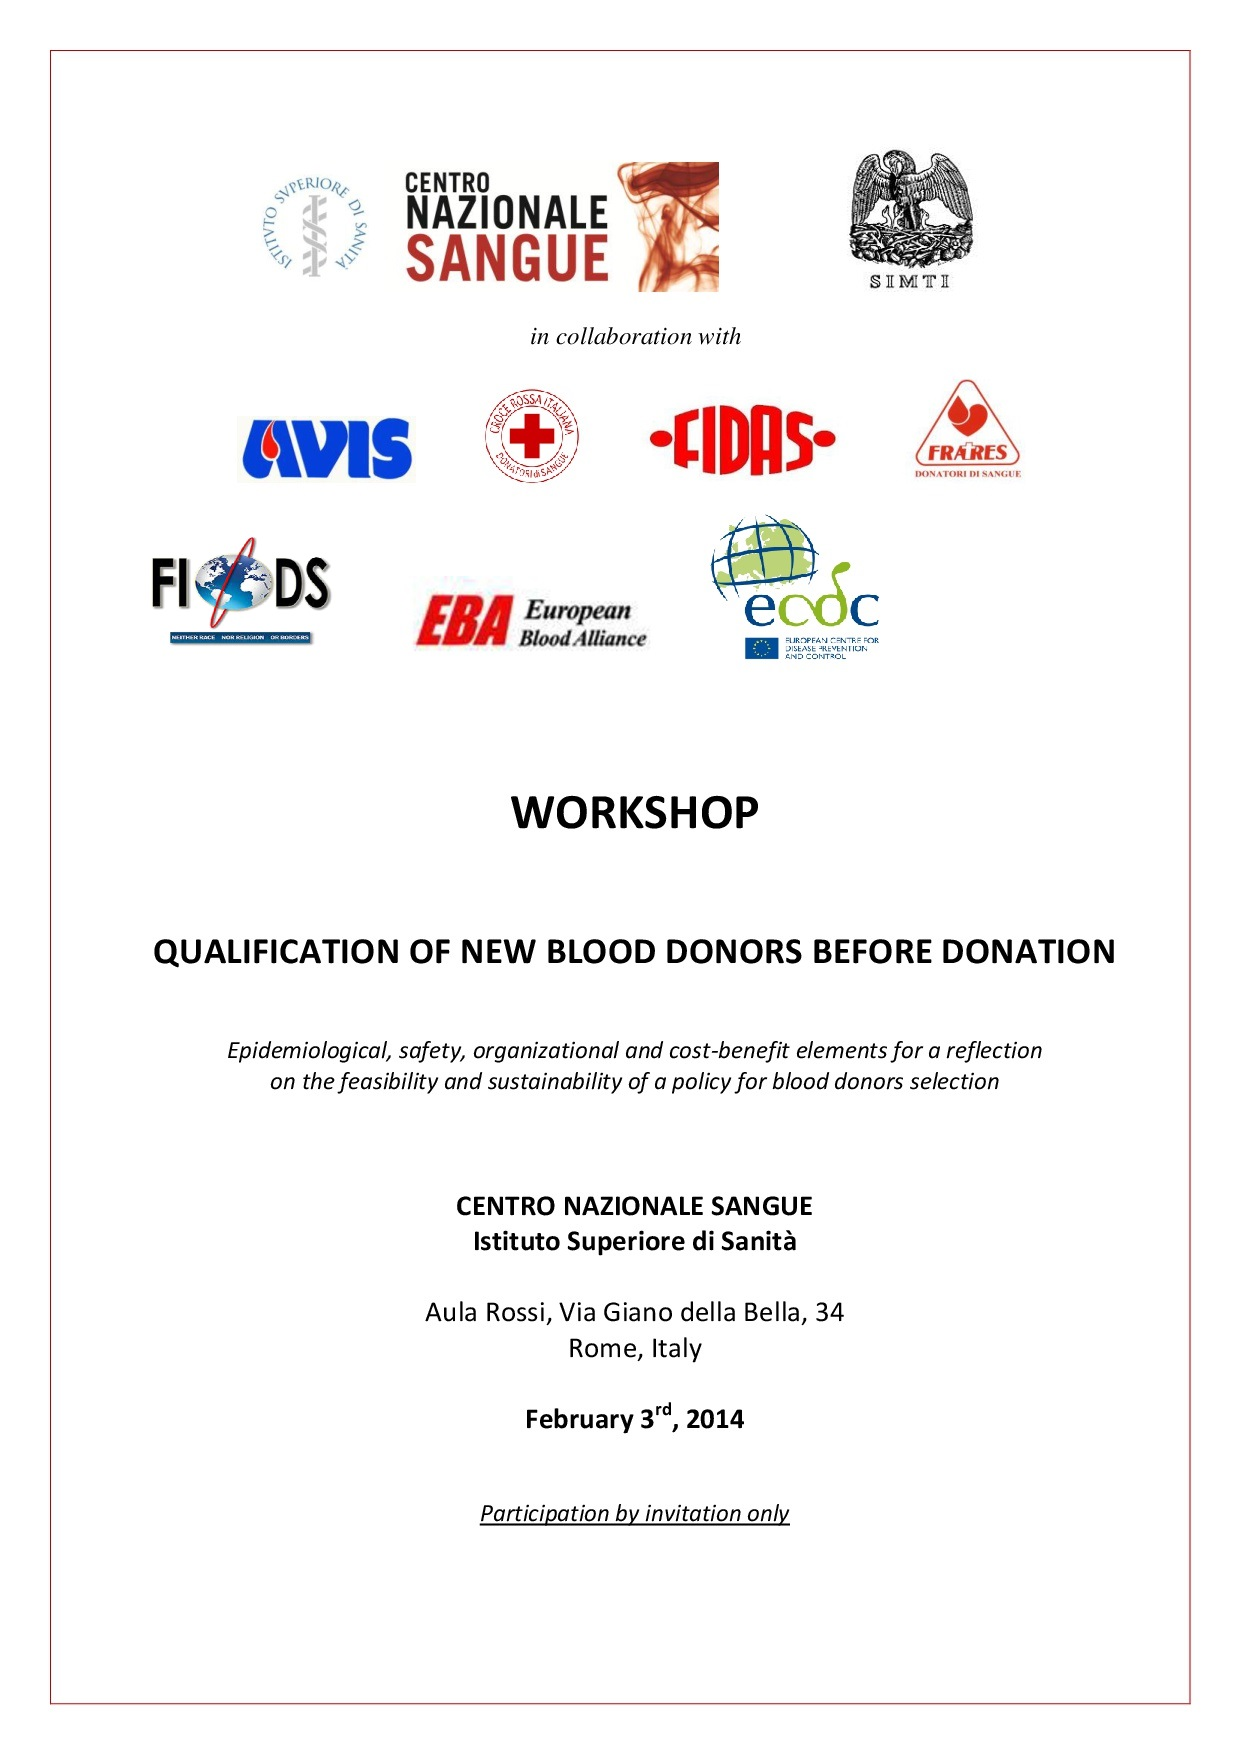 workshop-qualification-of-new-blood-donors-before-donation-february-001